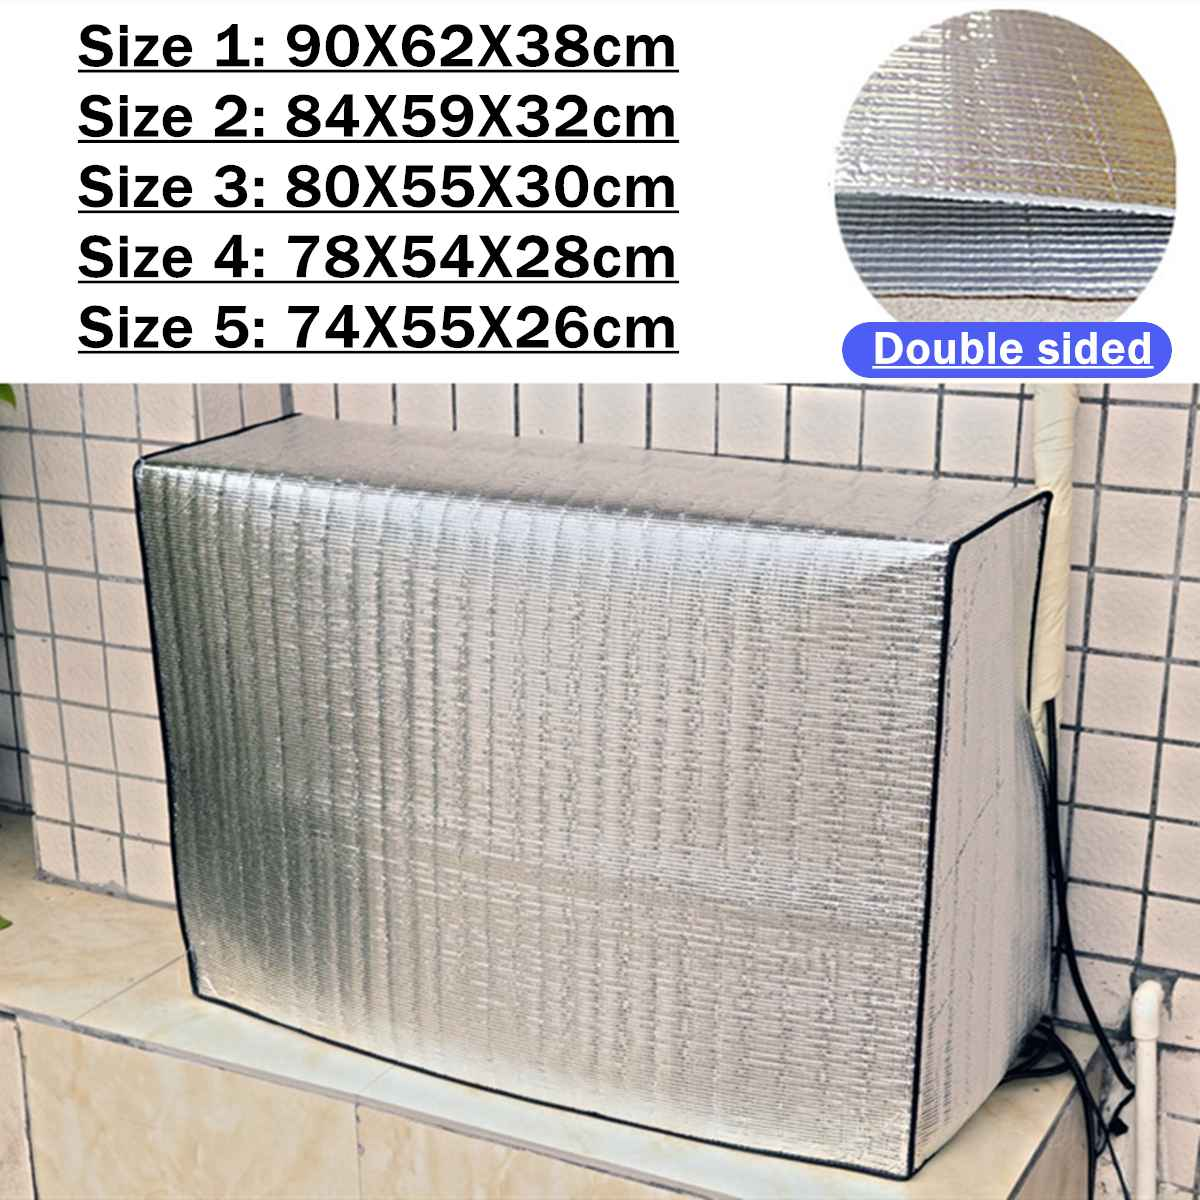 5 Sizes Air Conditioner Dust Cover Protector Double Sided Outdoor Hood External Waterproof Sunproof Clean Protective Cover